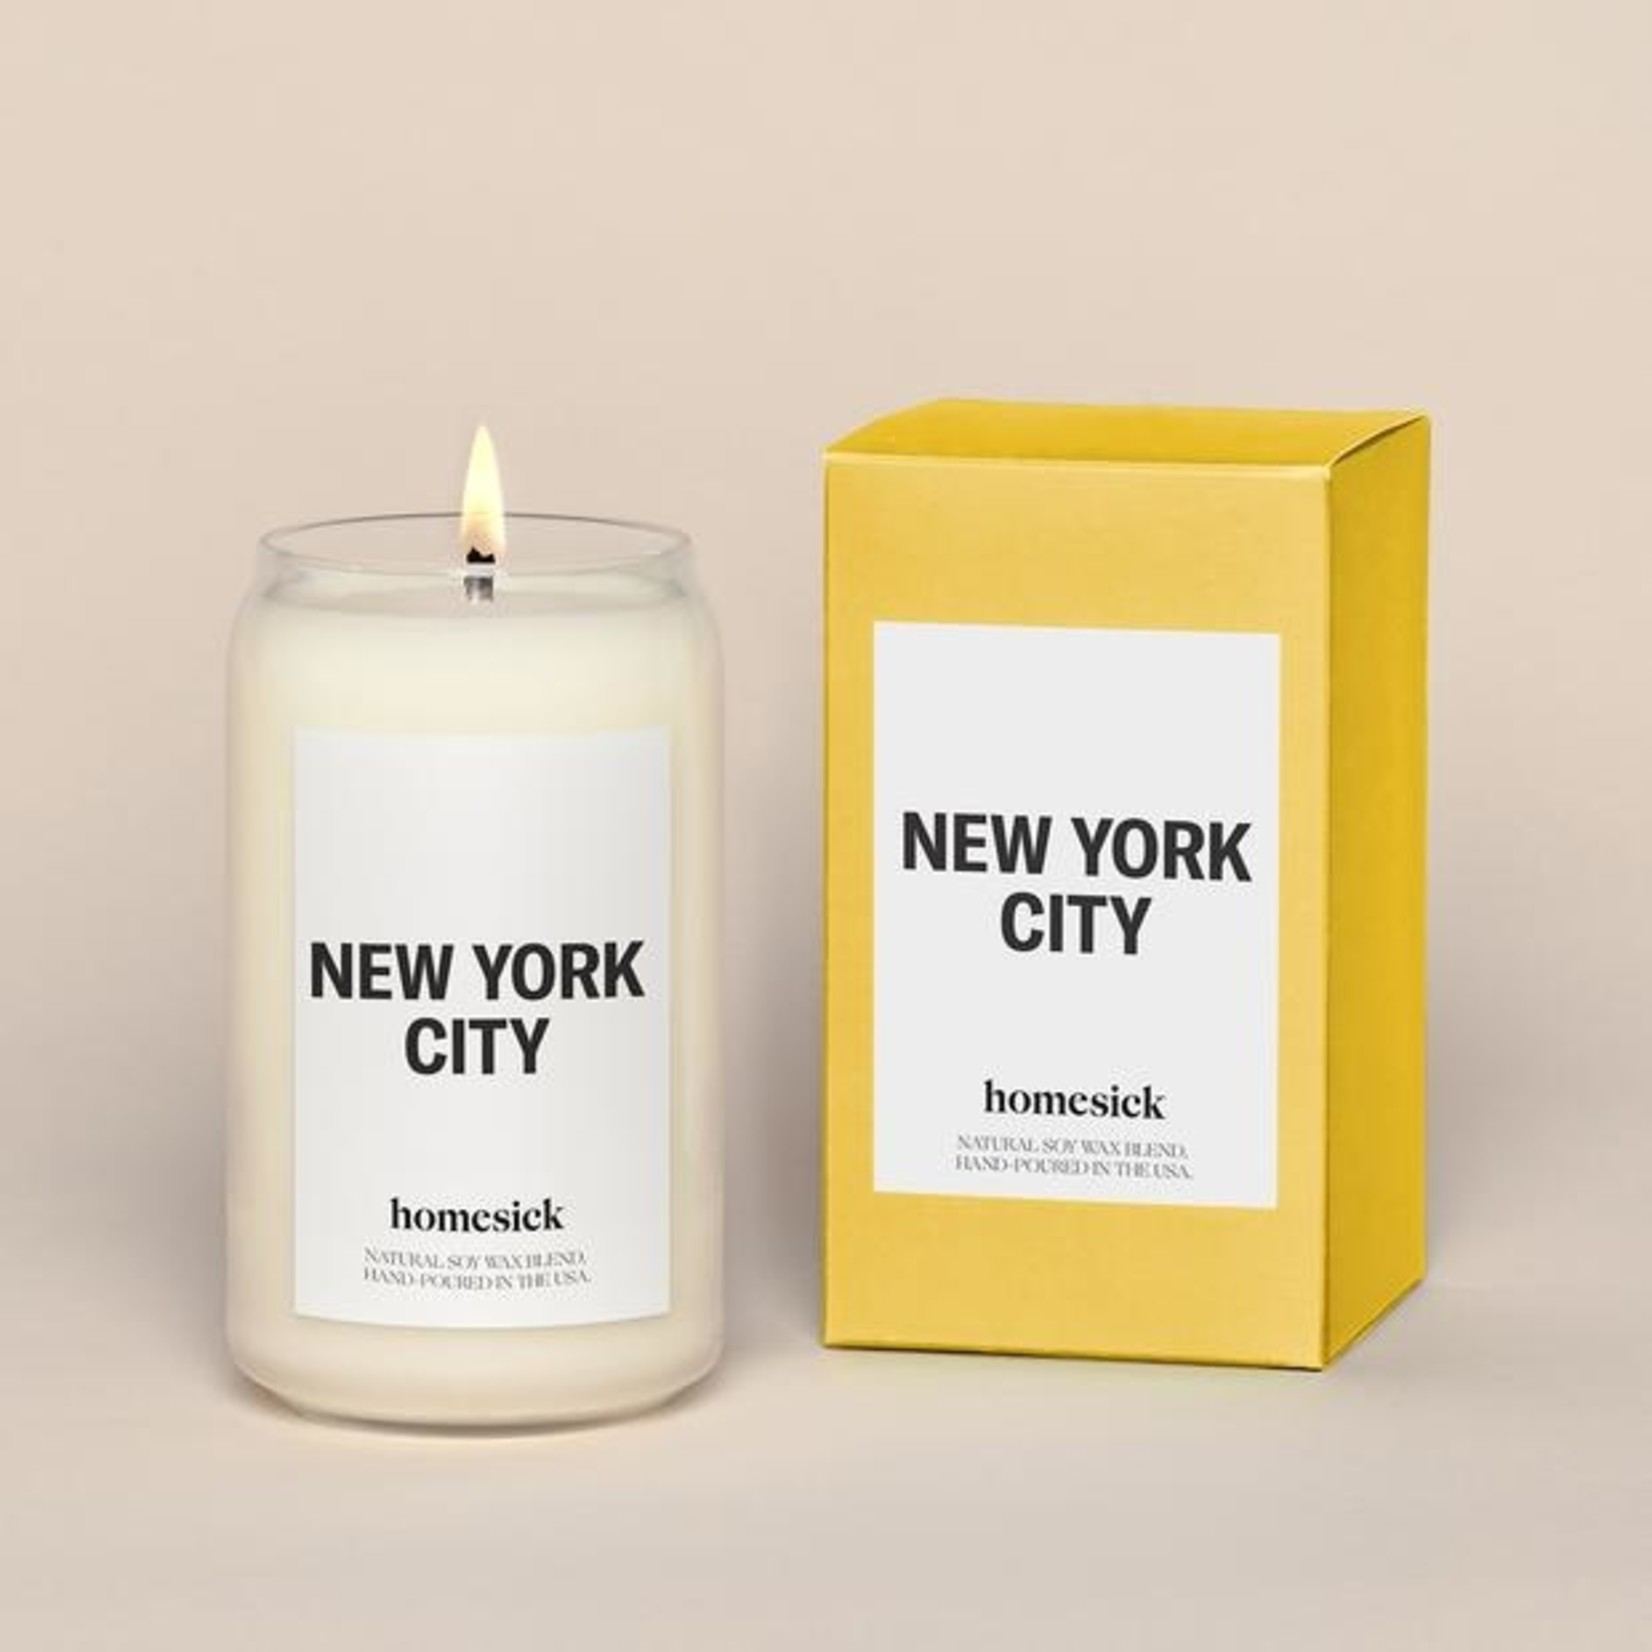 Homesick Candle Line